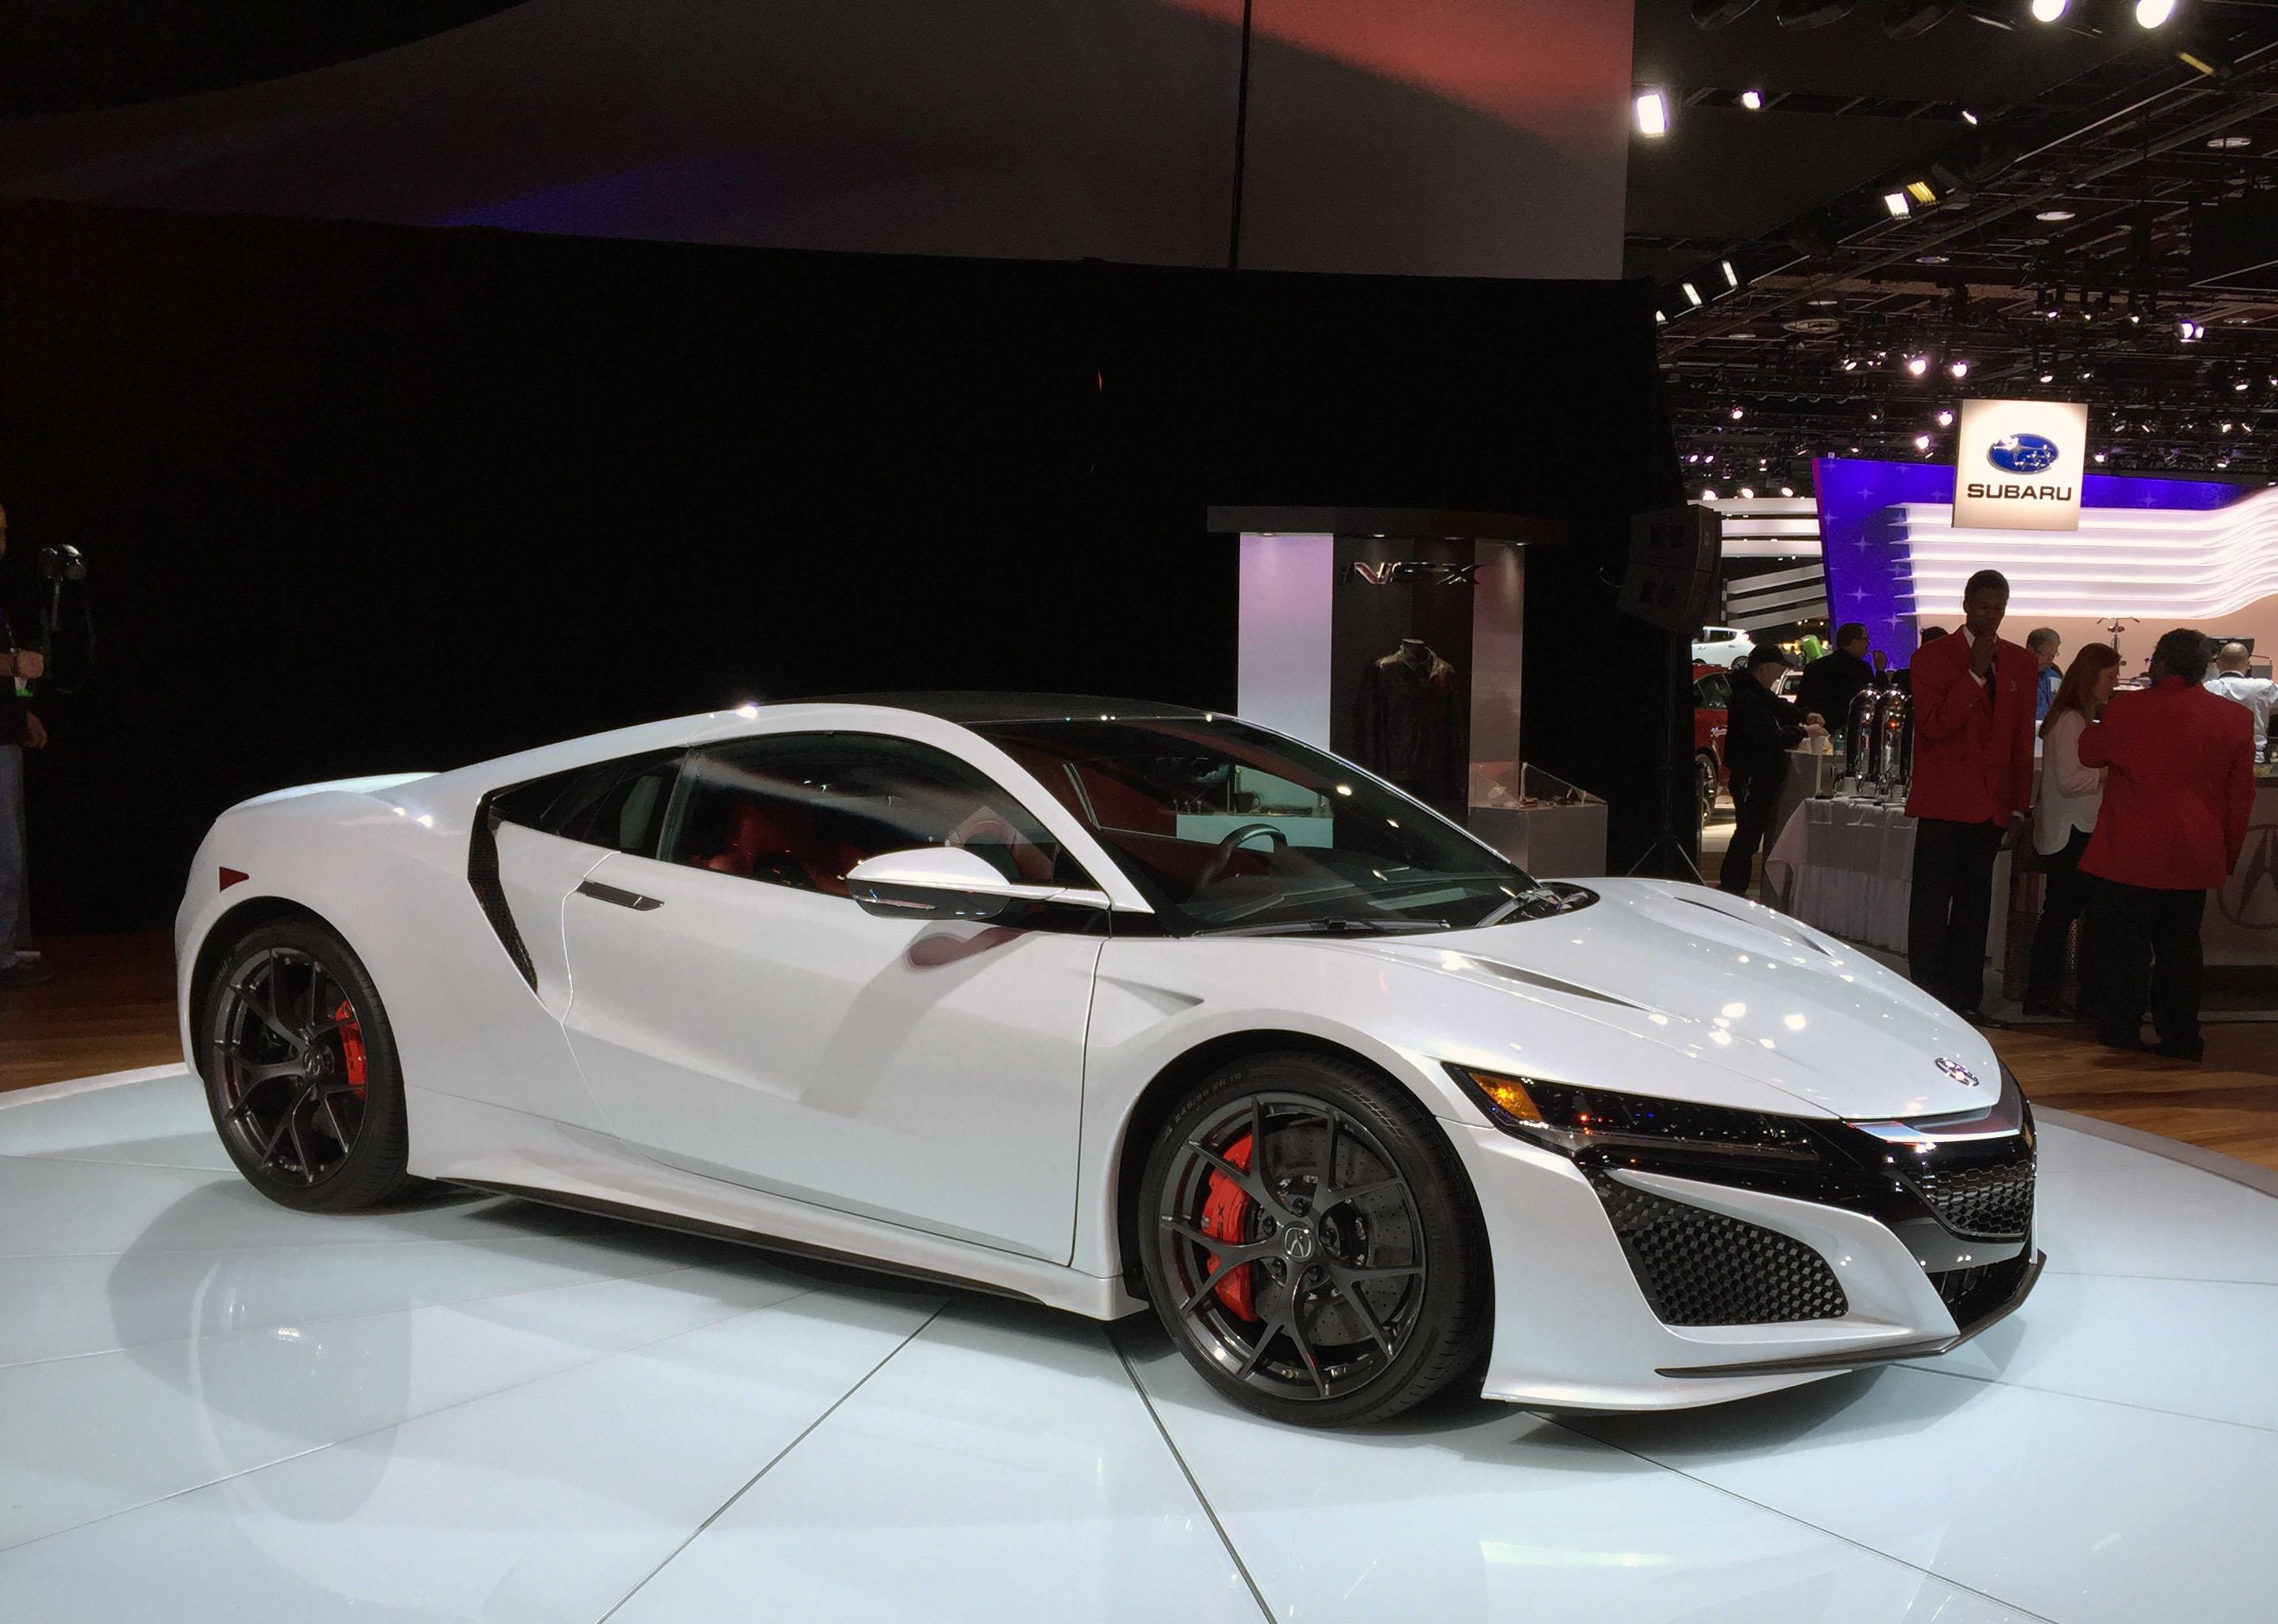 2017 Acura NSX (Photo by Jill Ciminillo)